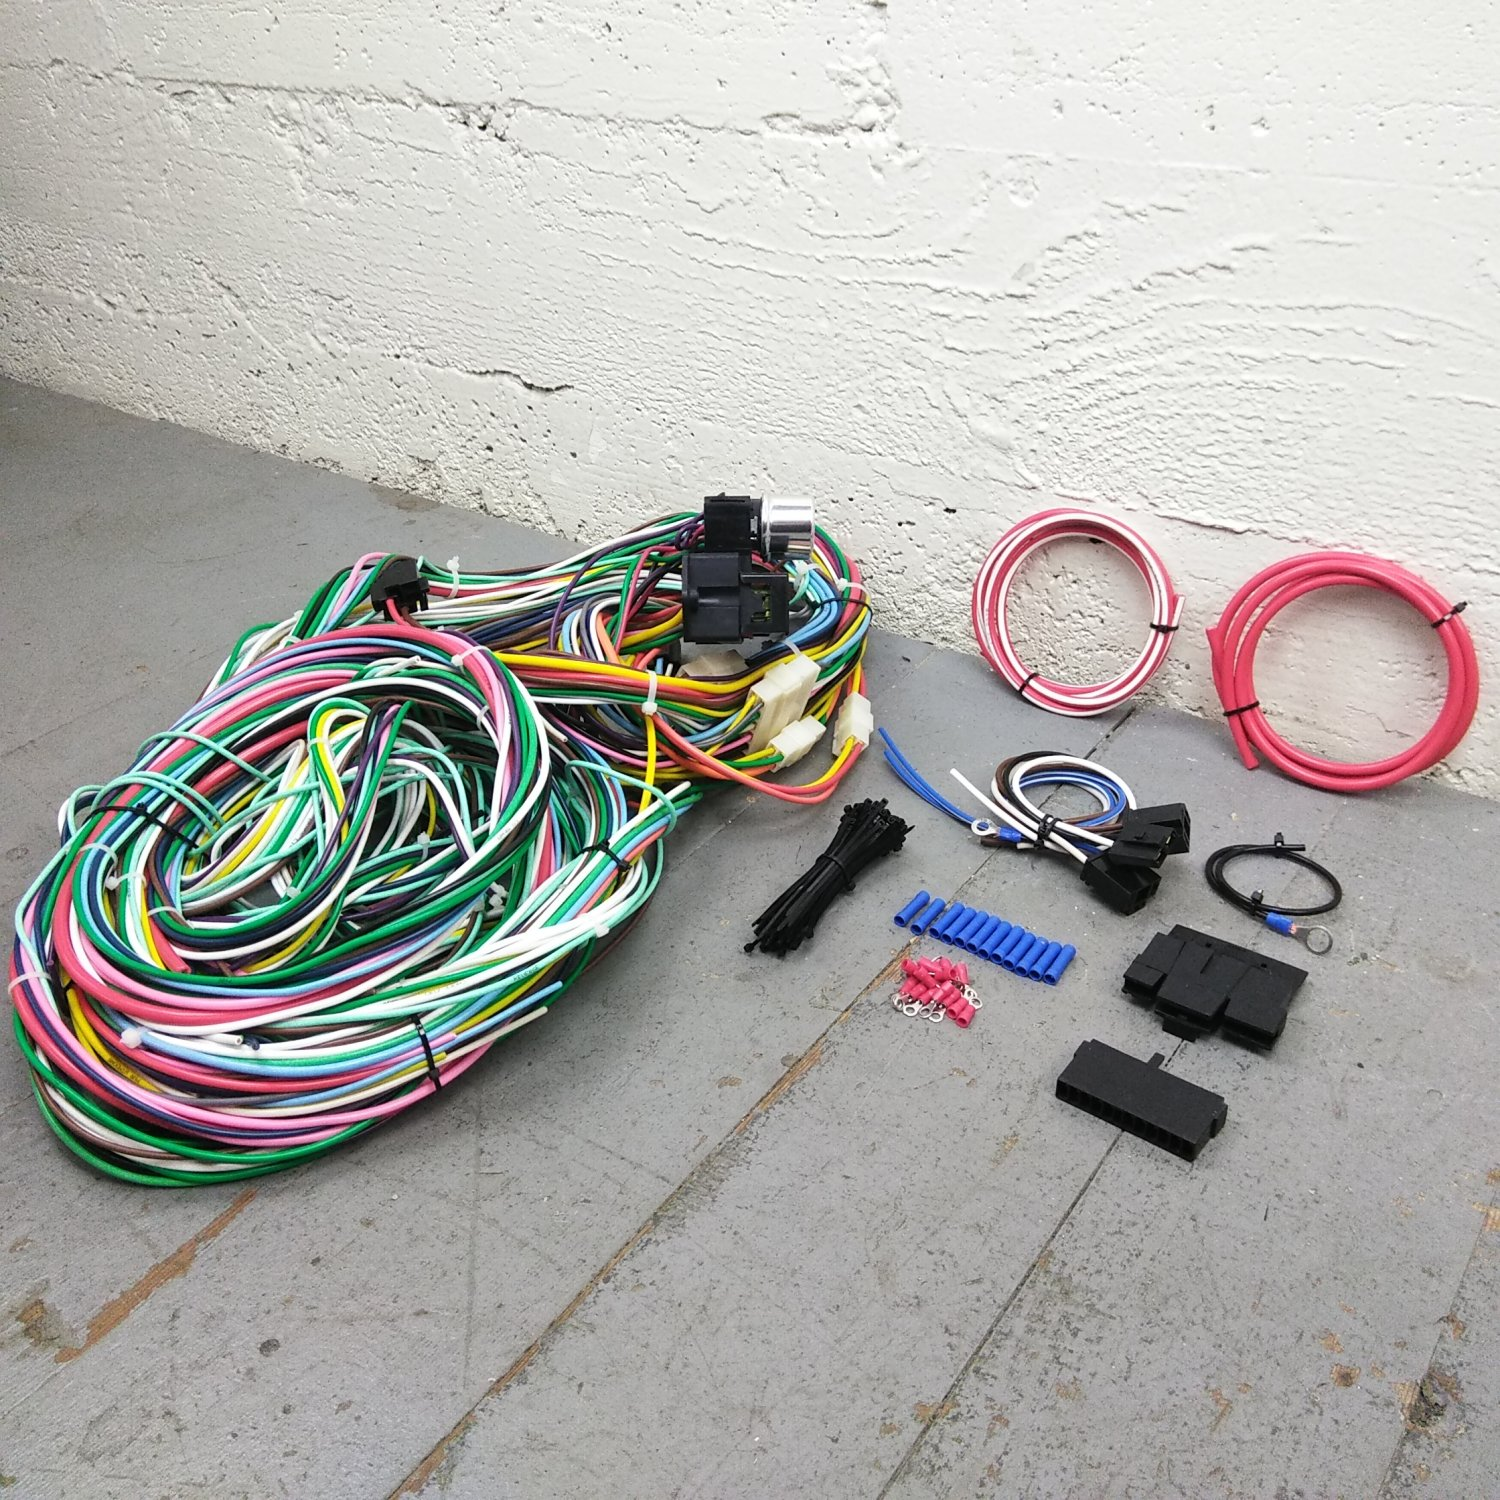 1966 dodge charger wiring harness 1966 1972 dodge charger wire harness upgrade kit fits painless  dodge charger wire harness upgrade kit